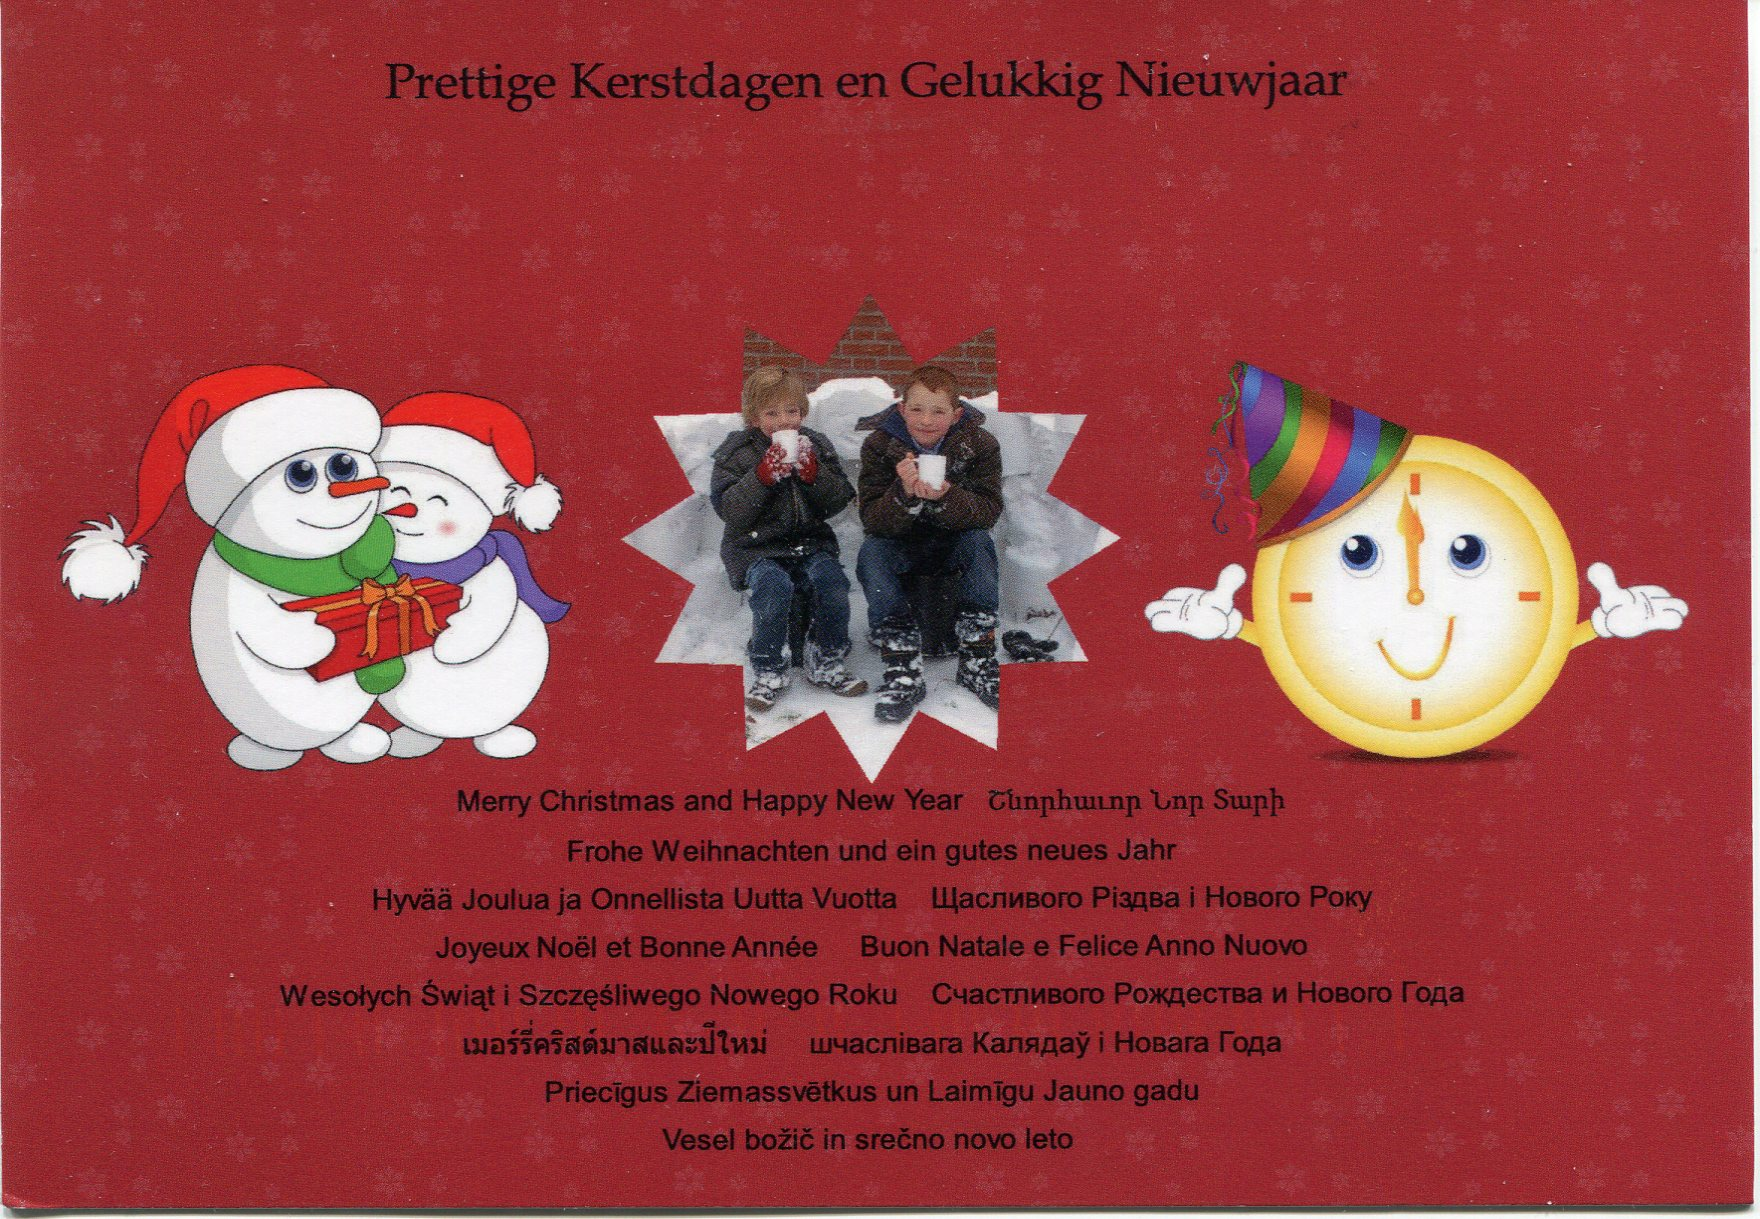 Netherlands christmas card remembering letters and postcards merry christmas and happy new year netherlands christmas card kristyandbryce Choice Image